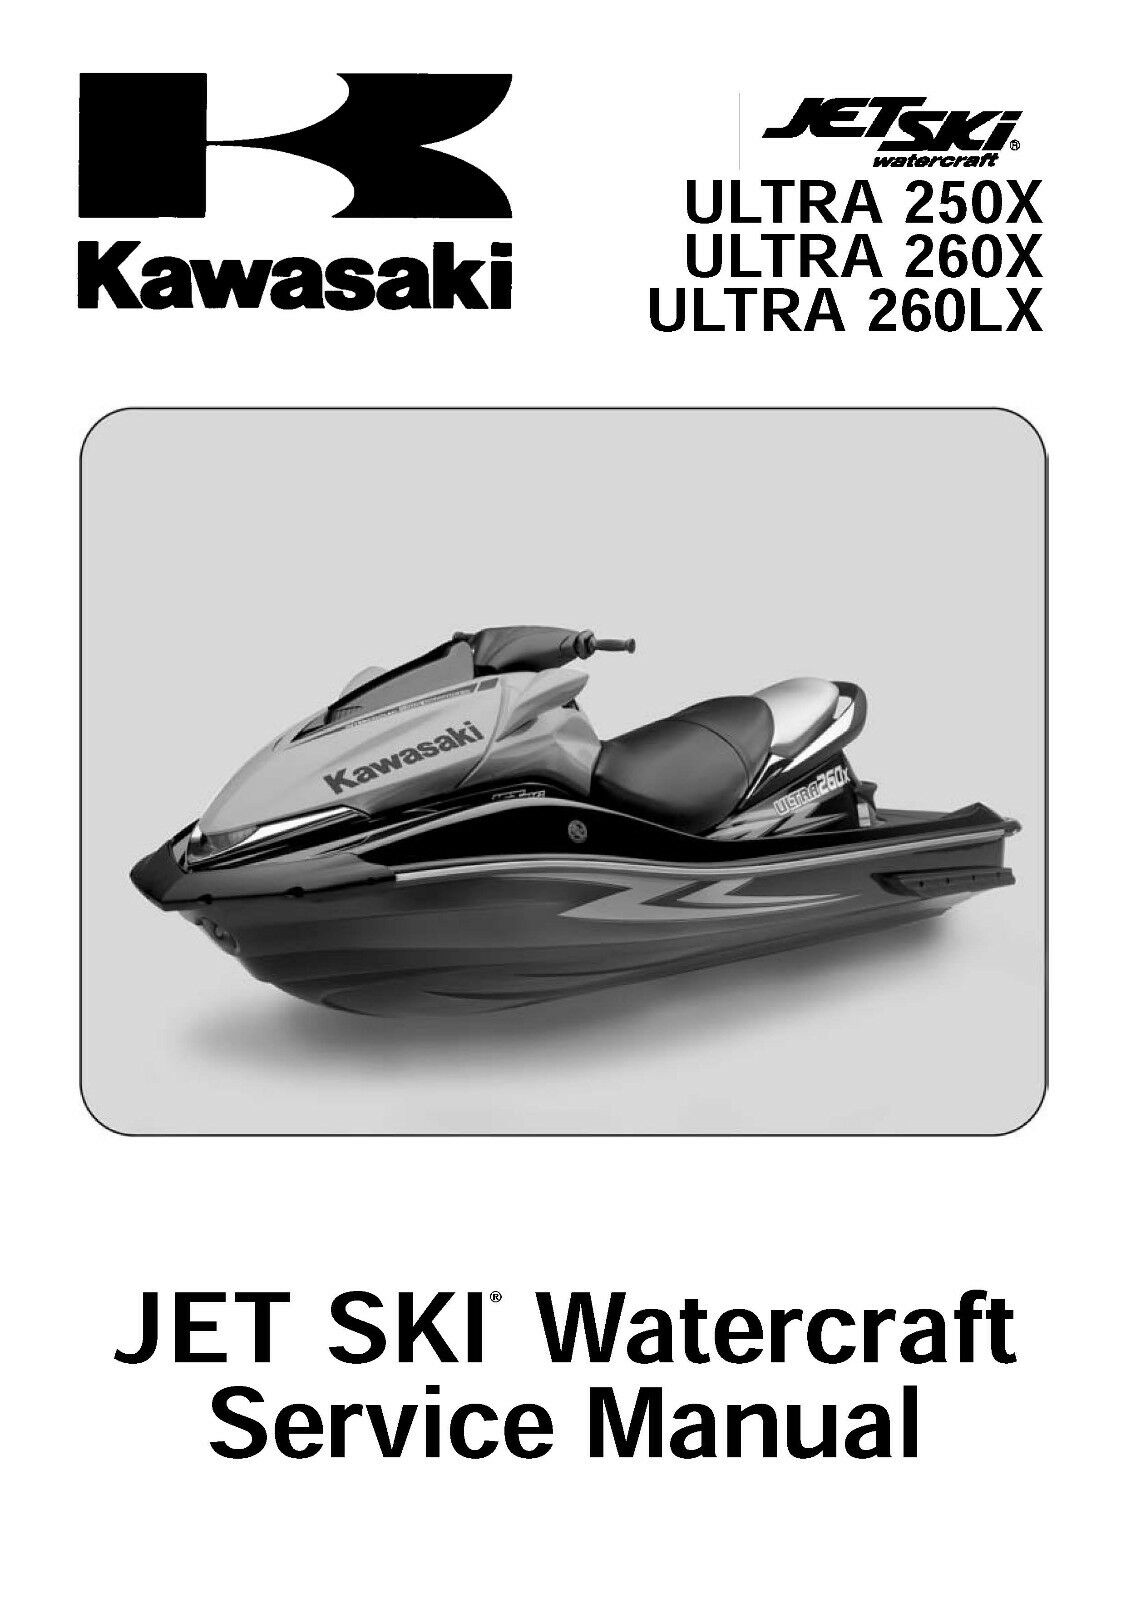 Kawasaki jet ski service workshop manual 2007, 2008, 2009 & 2010 ULTRA  260LX 1 of 12FREE Shipping ...